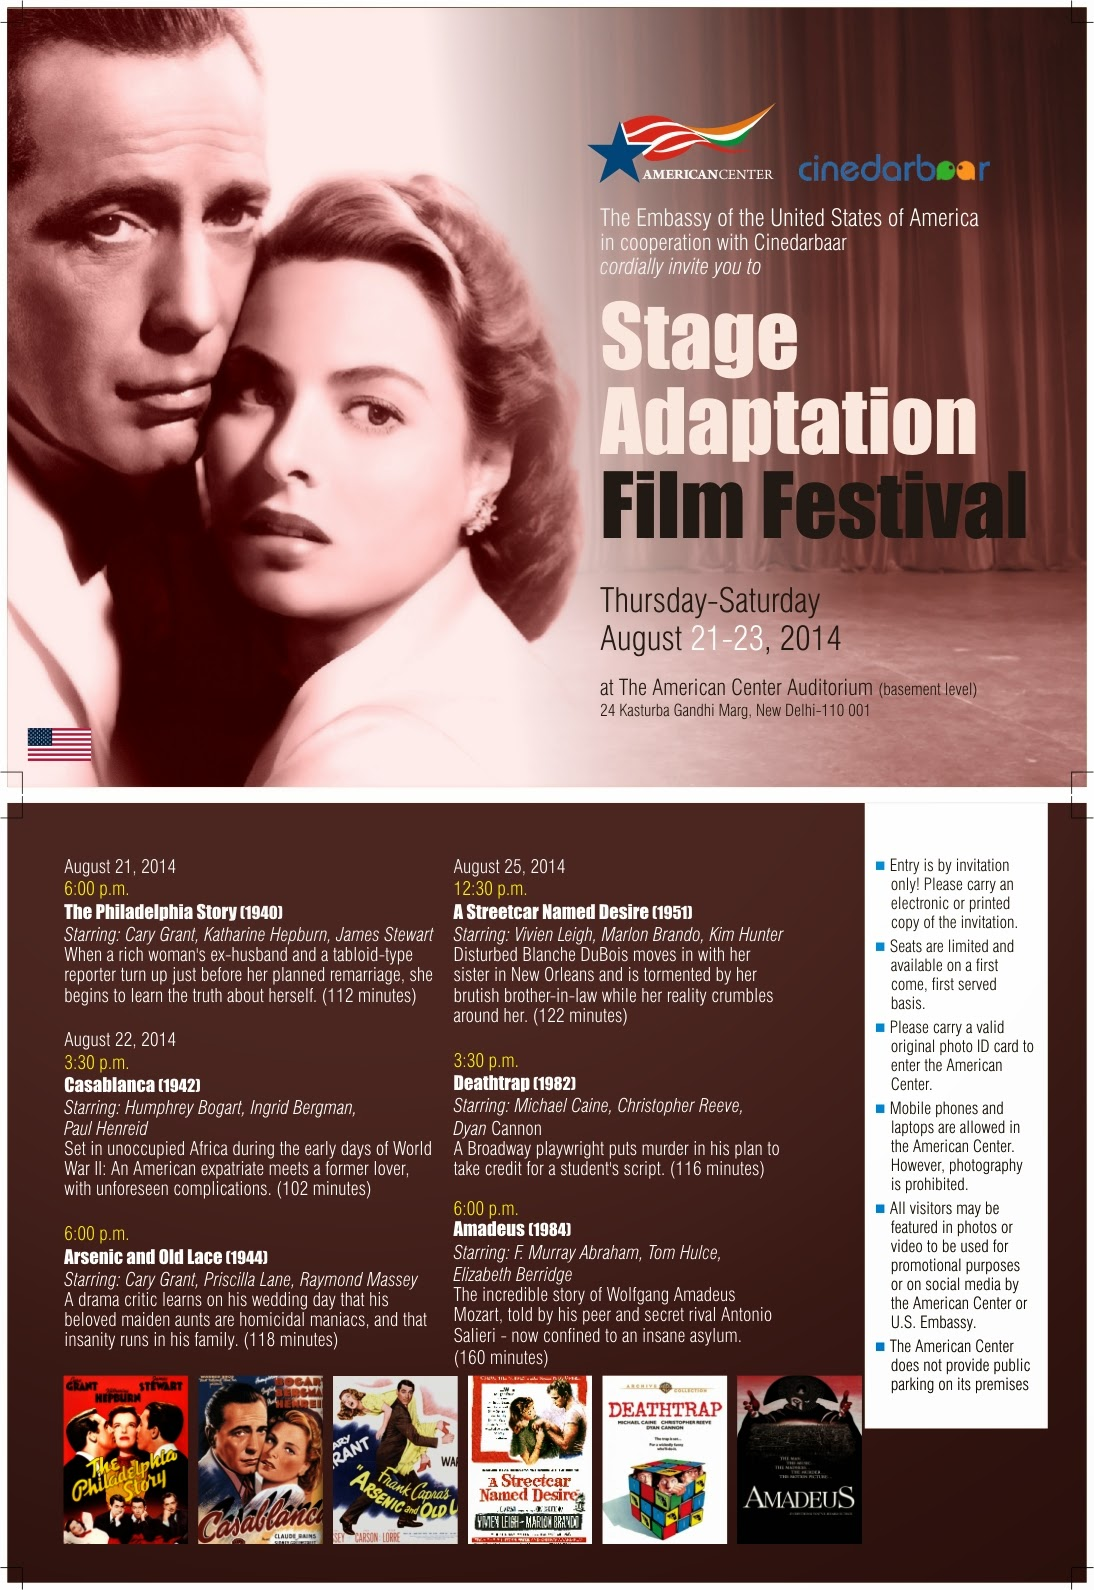 Stage Adaptation Film Festival, Festival Poster, American Center, Cinedarbar